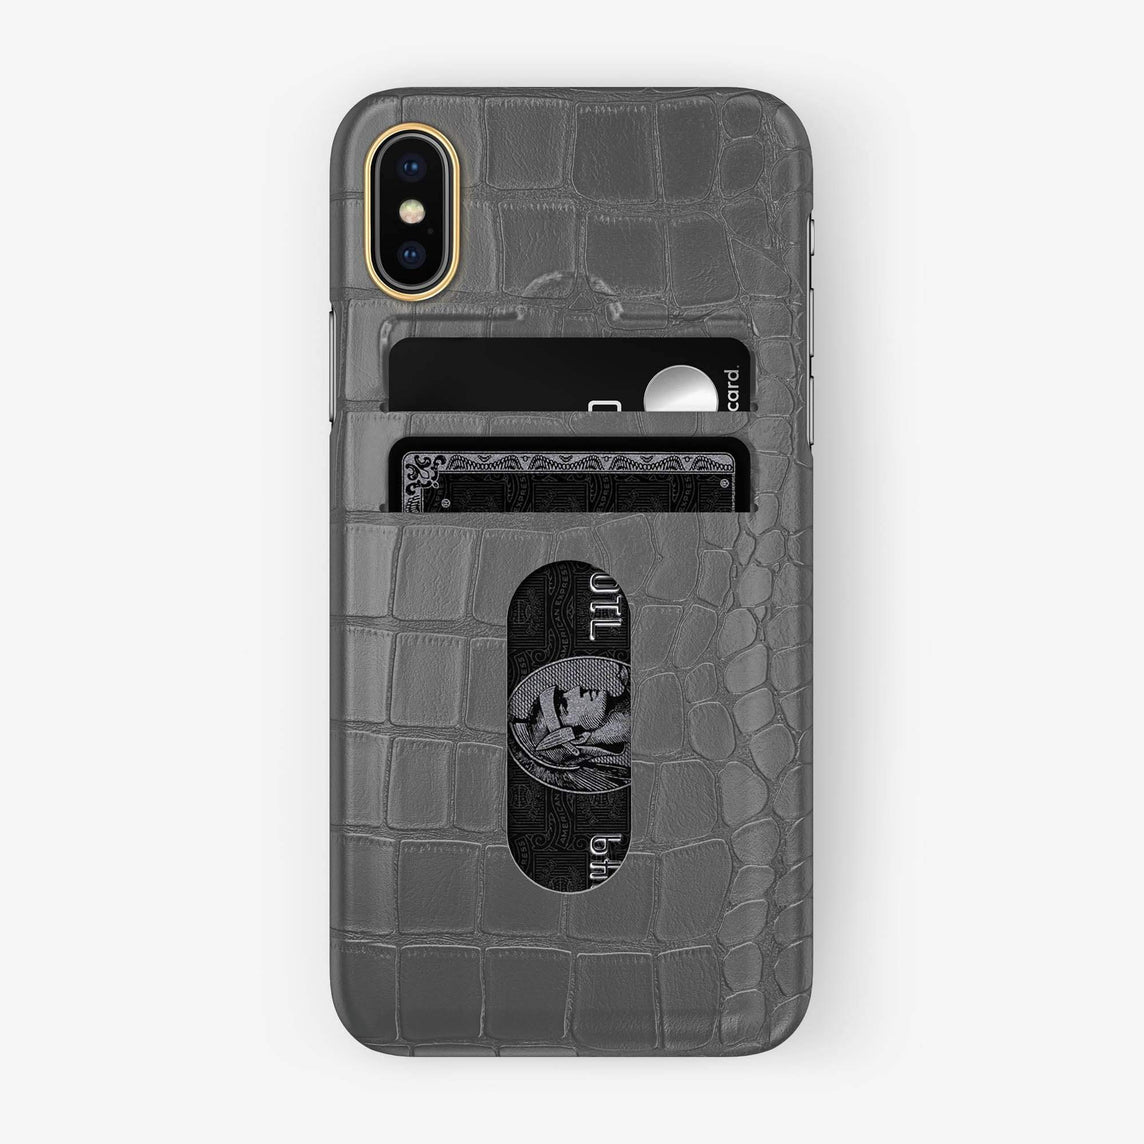 Alligator Card Holder Case iPhone Xs Max | Grey - Yellow Gold - Hadoro